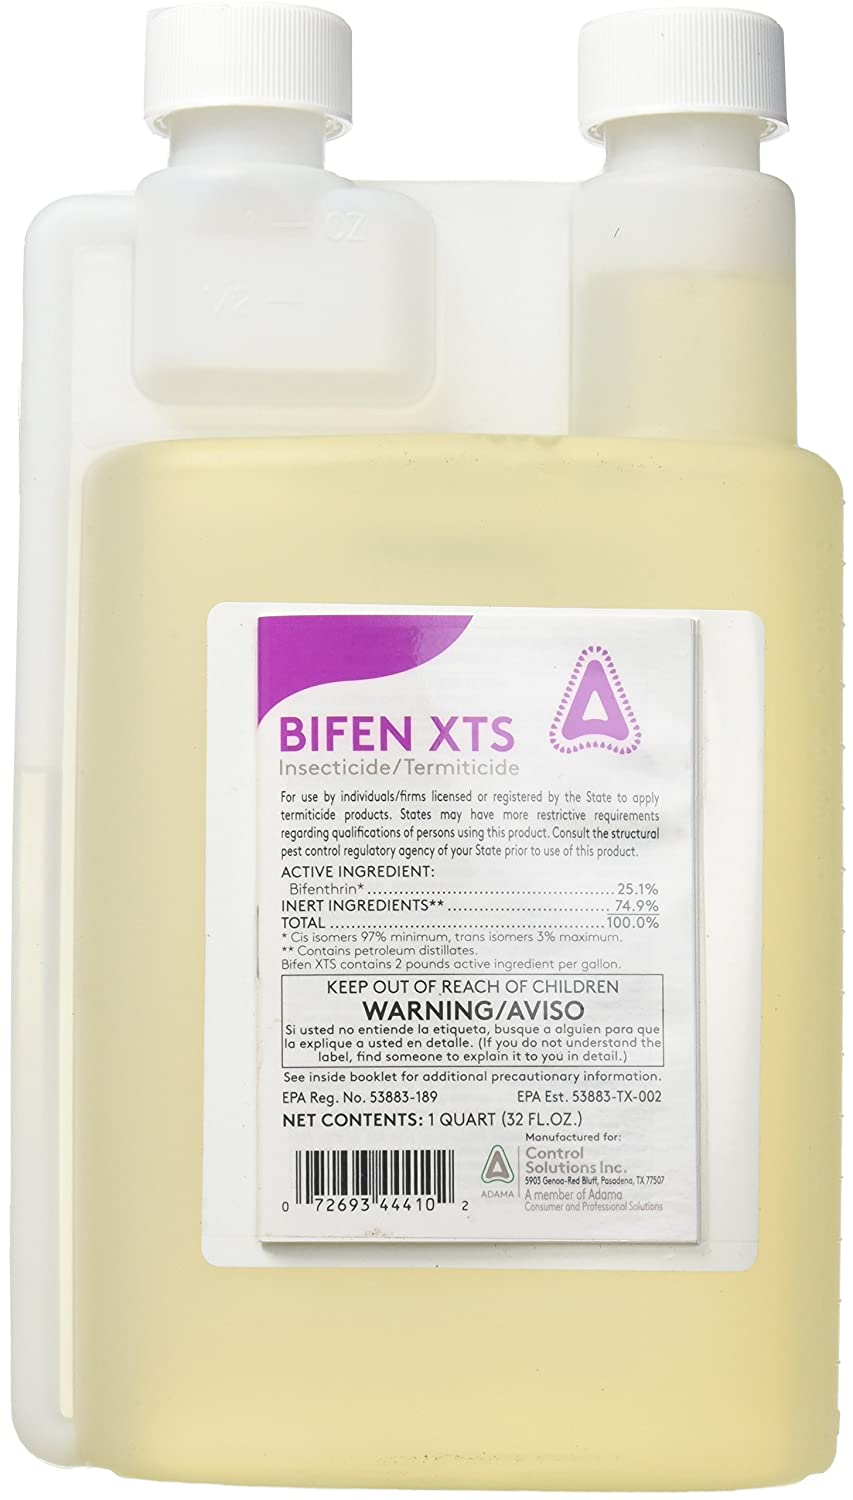 Bifen XTS 25.1% 32 oz quart